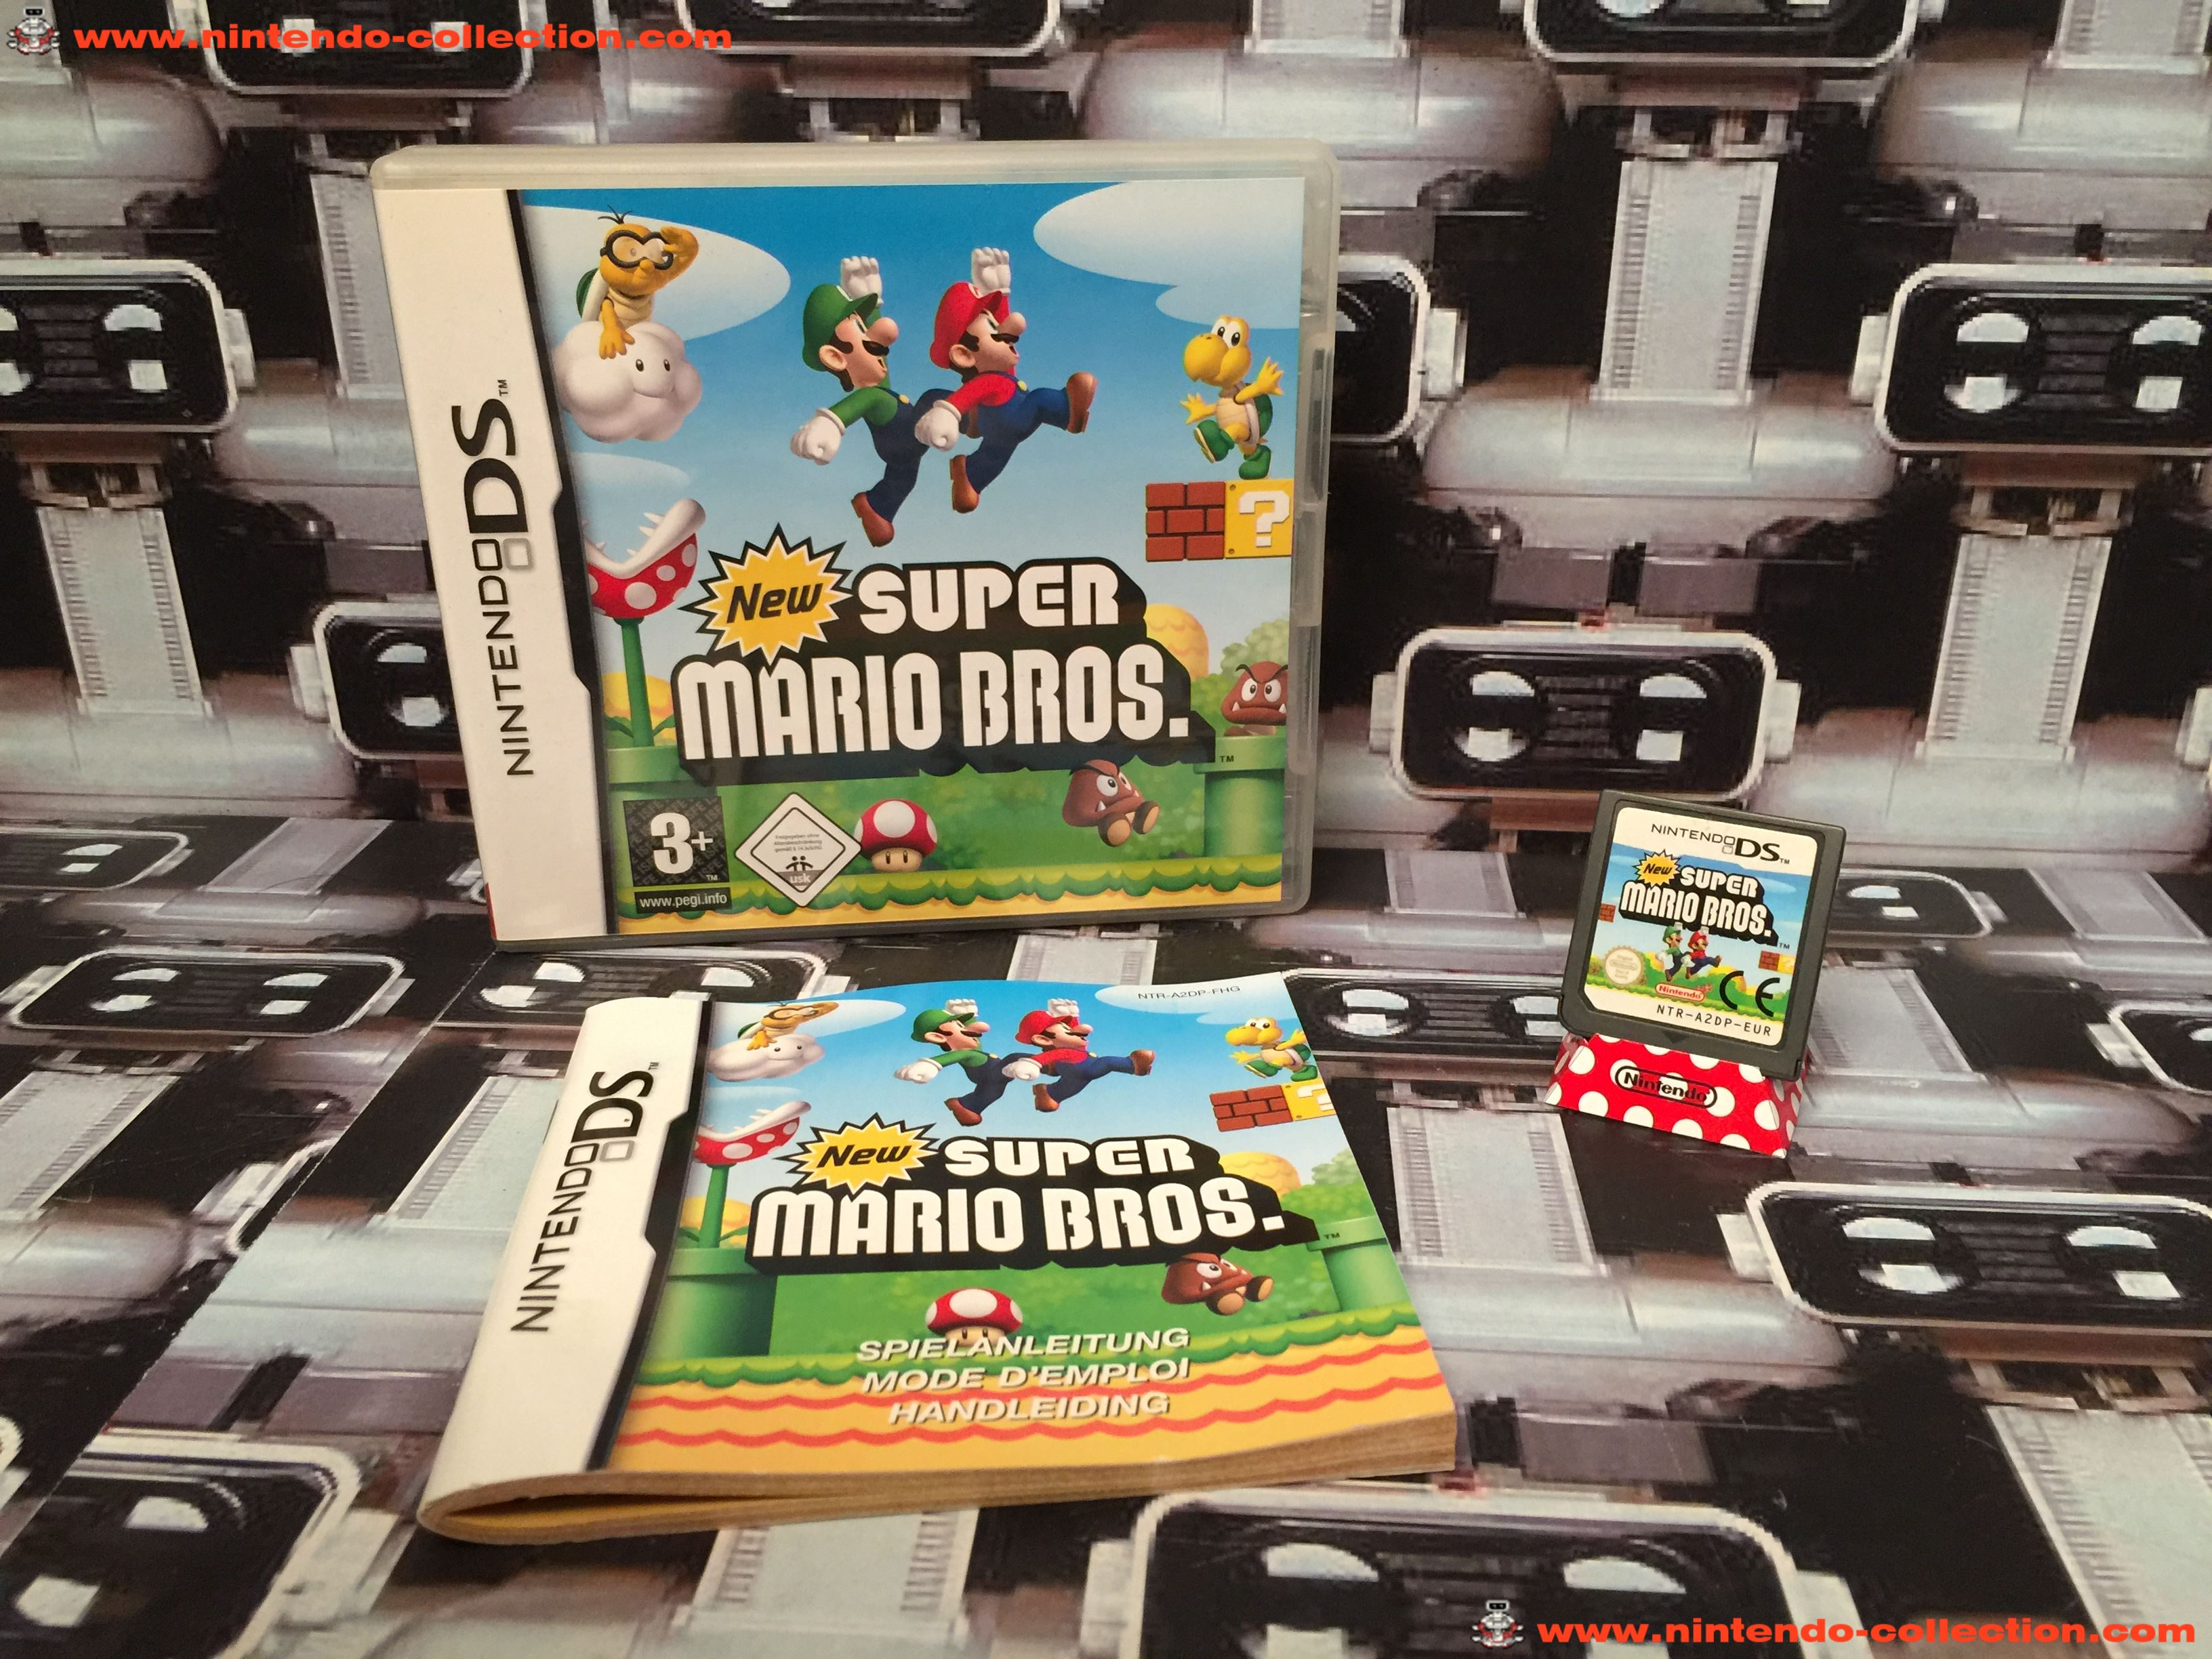 www.nintendo-collection.com - Nintendo DS Jeux Game New Super Mario Bros